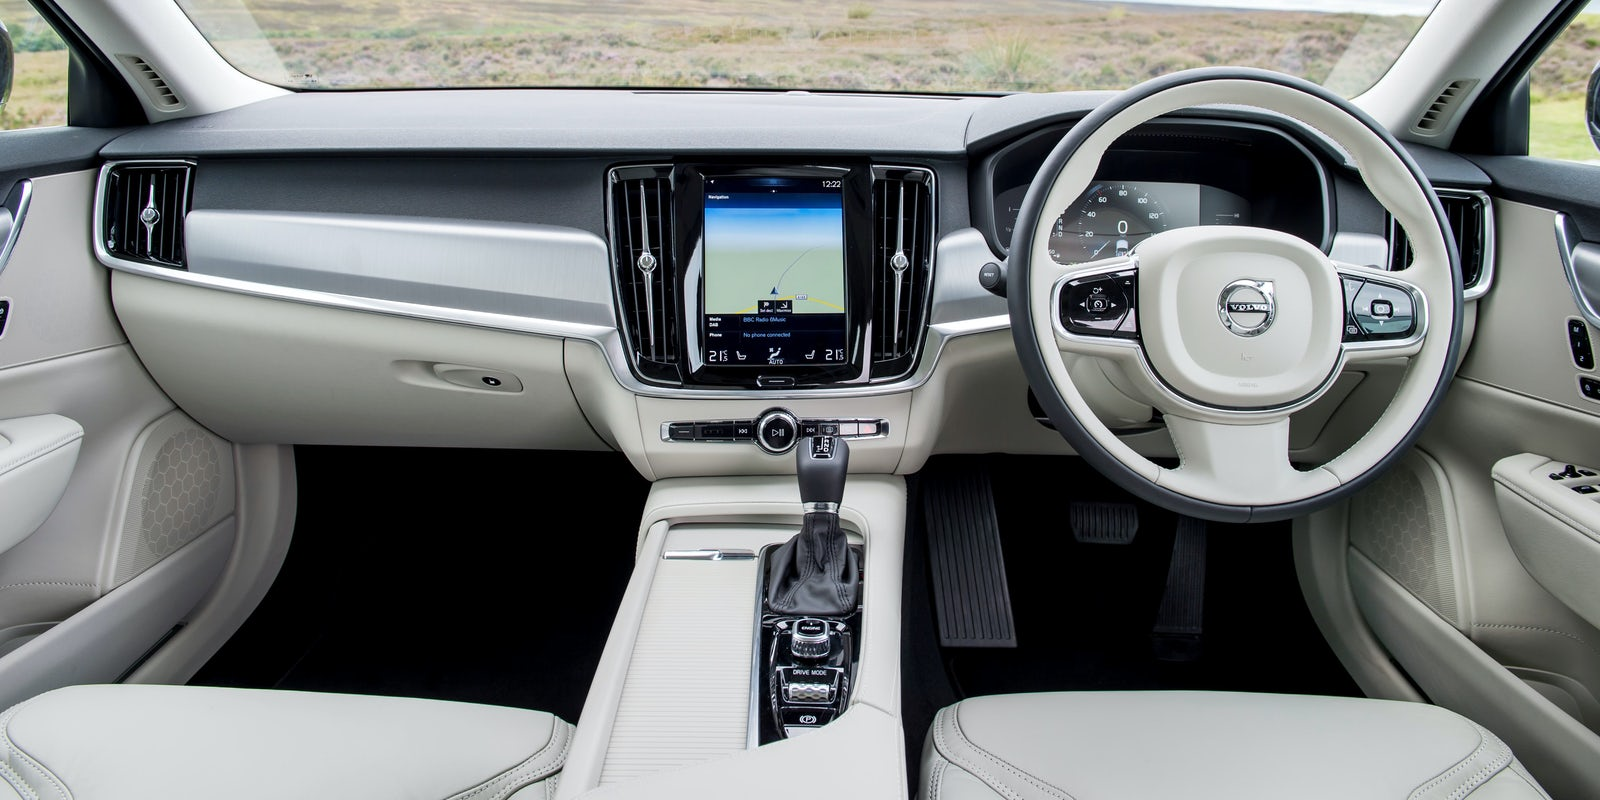 Volvo V90 interior and infotainment | carwow